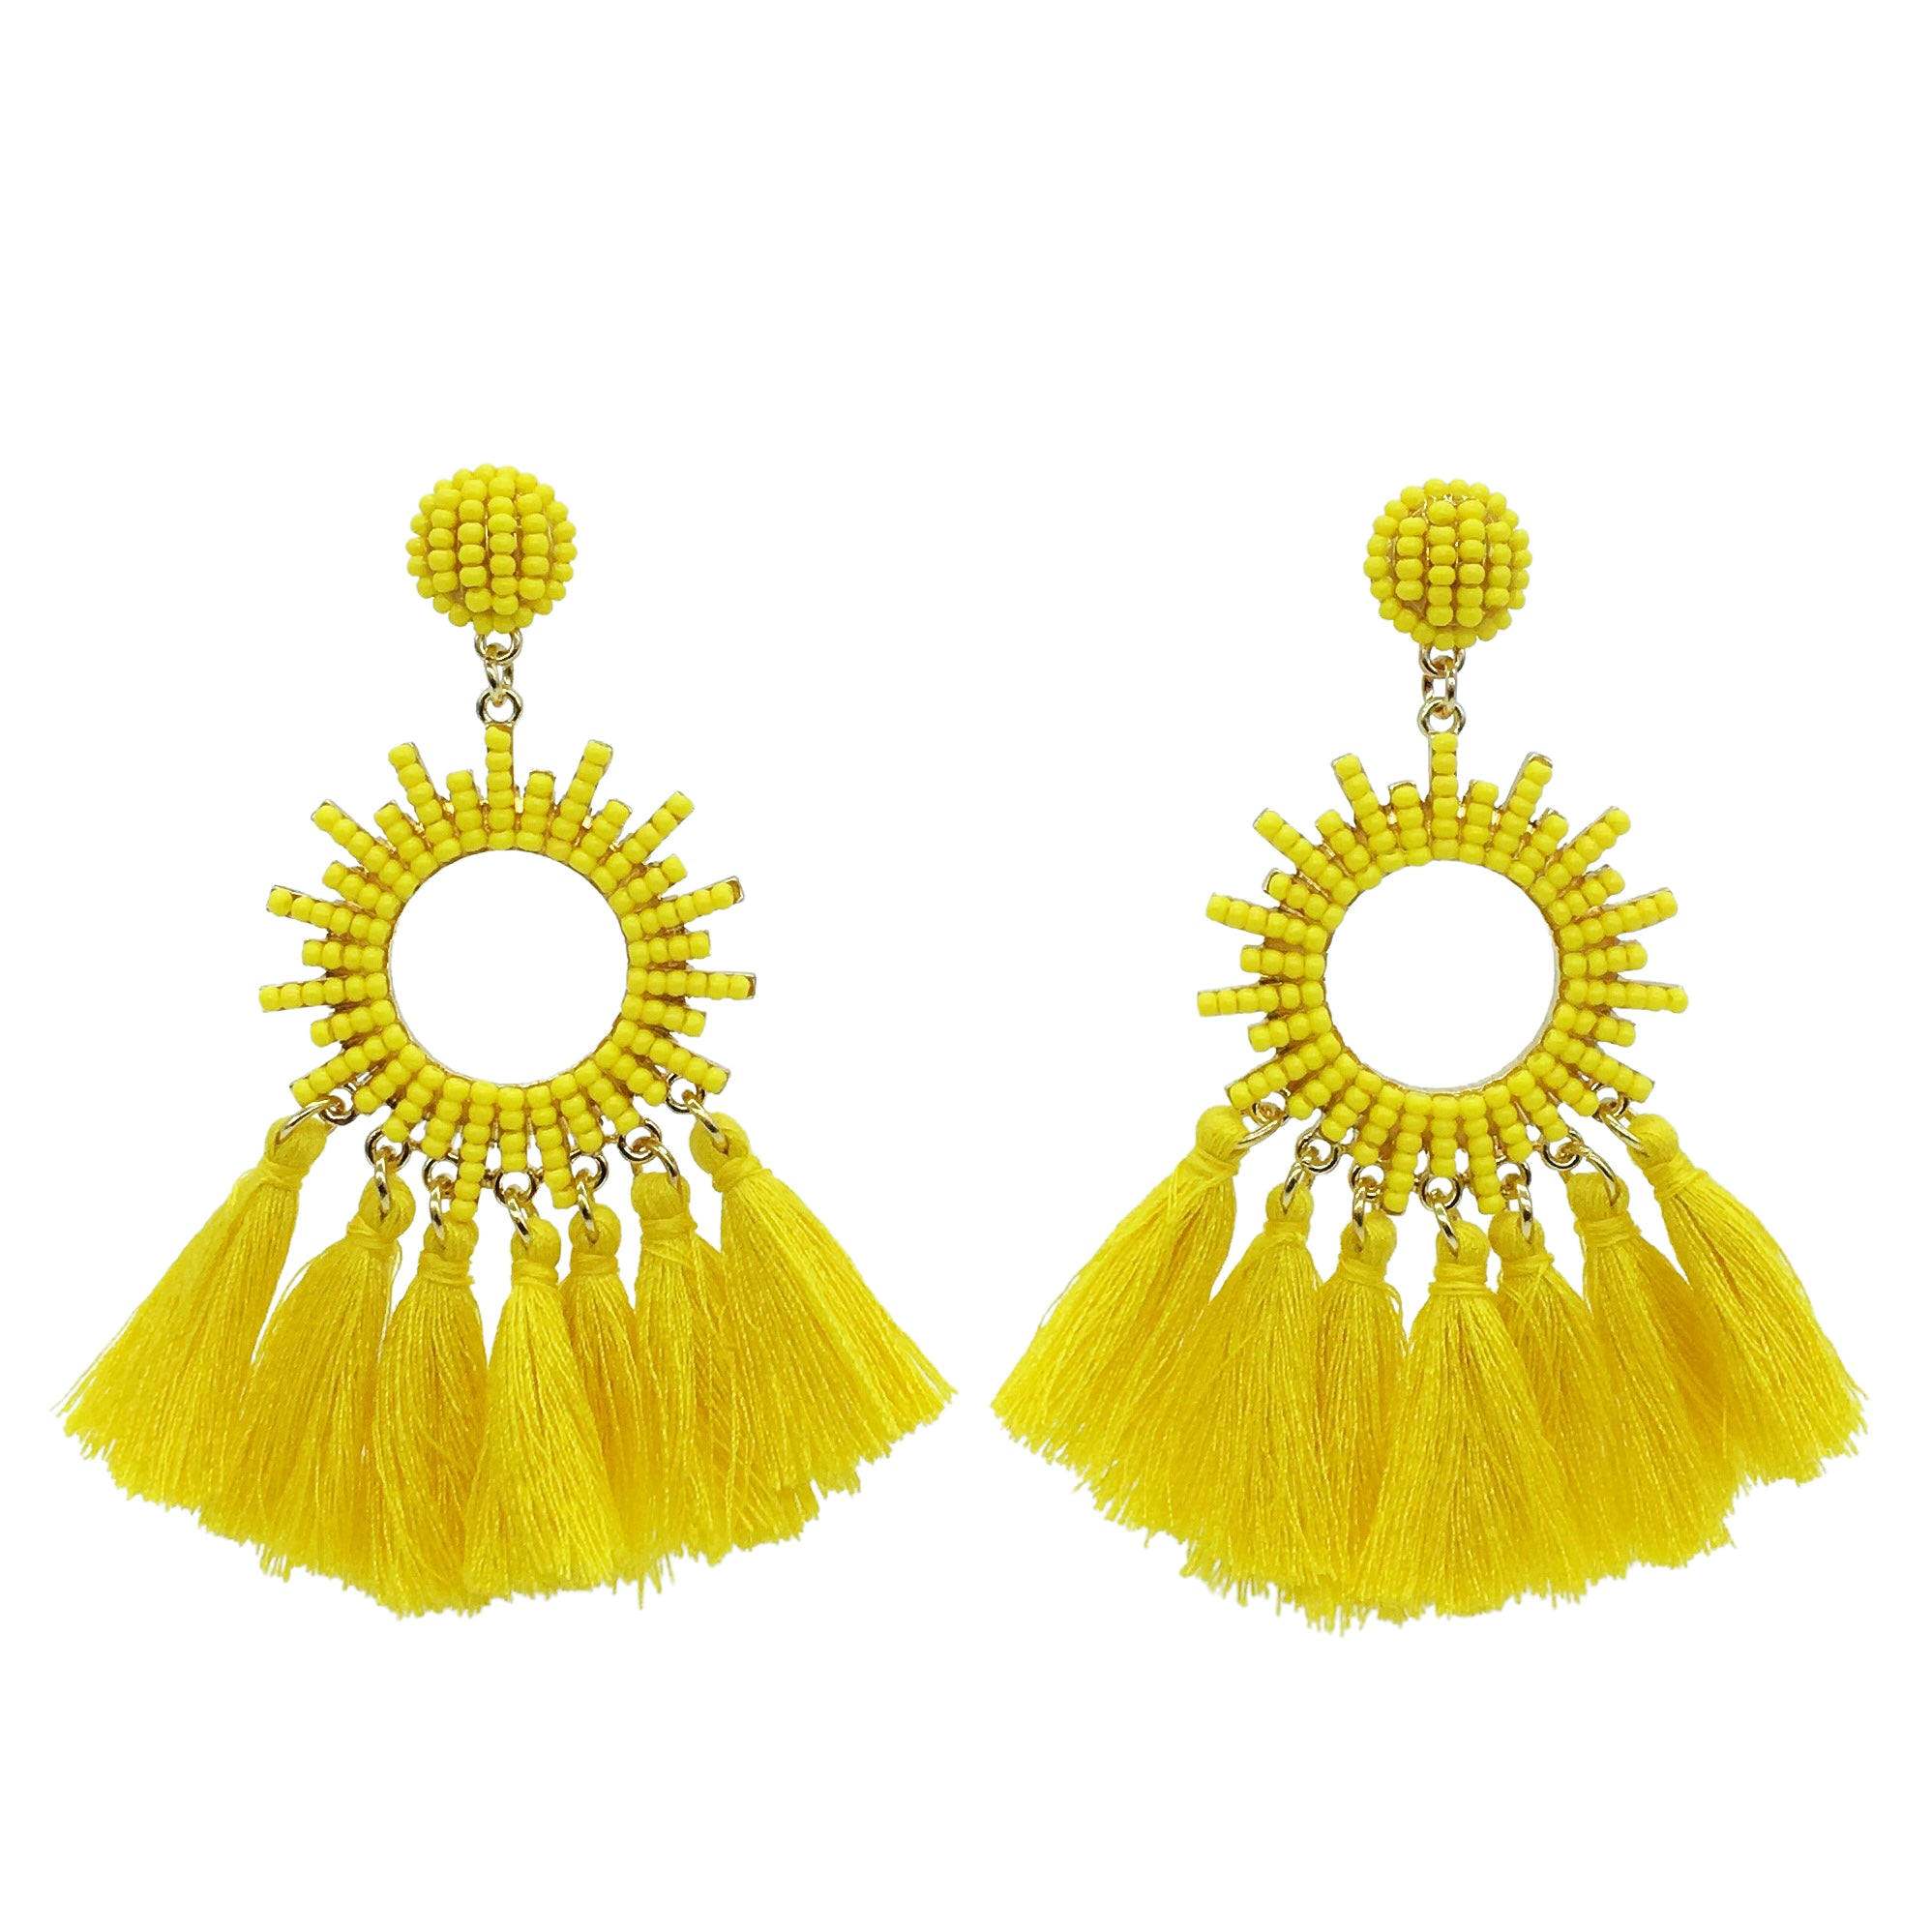 Ariel tassel Earring - Yellow